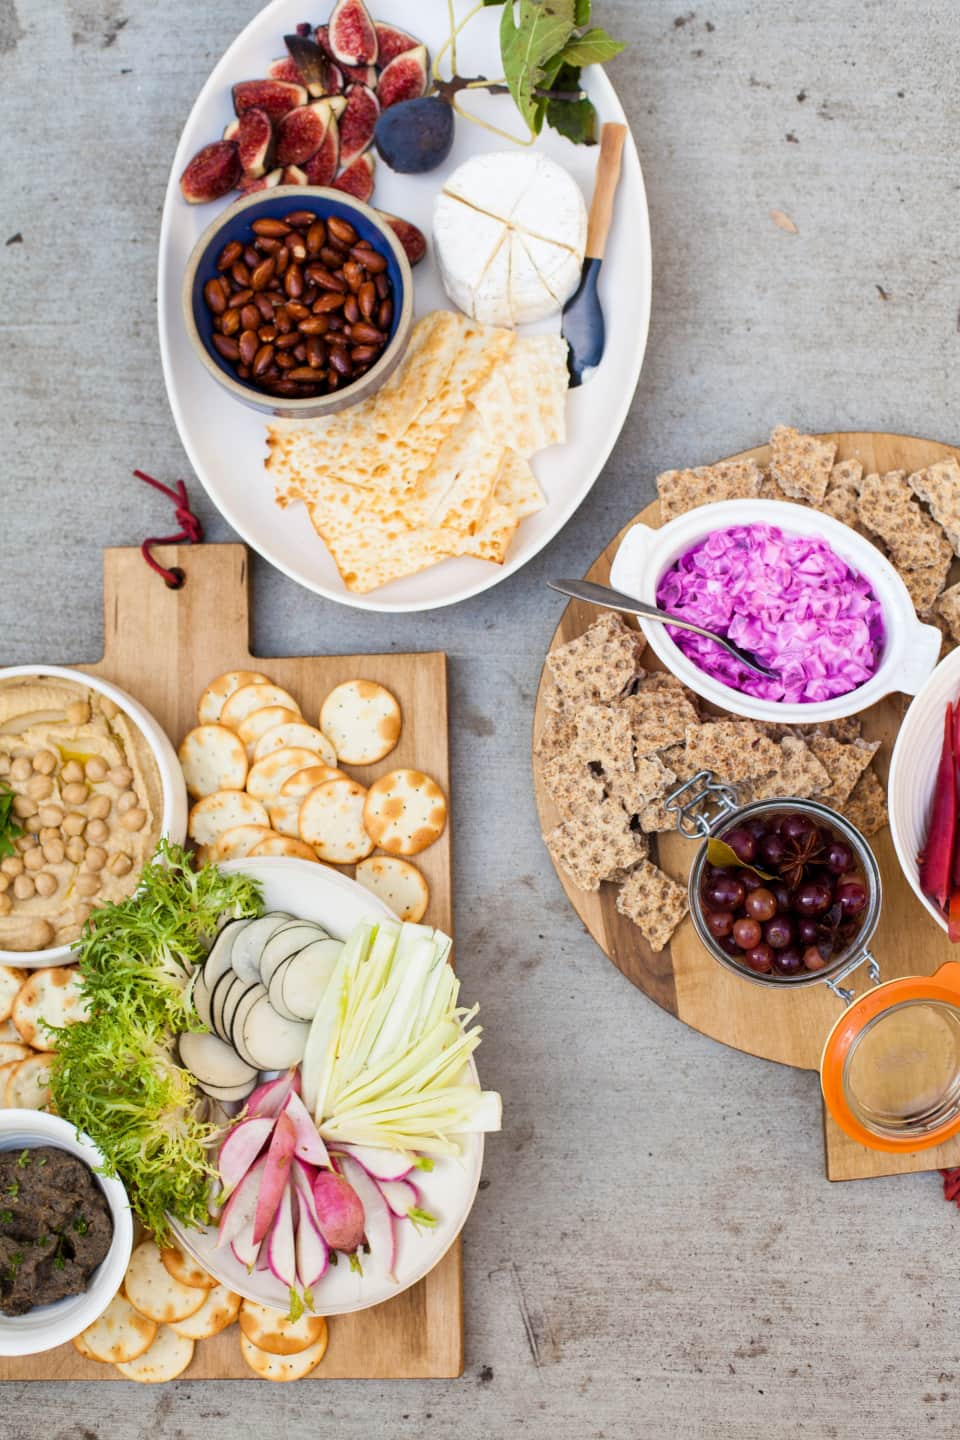 Thanksgiving Inspiration Modern Relish Tray   The Most Beautiful And Tasty Party Platters For Every Occasion